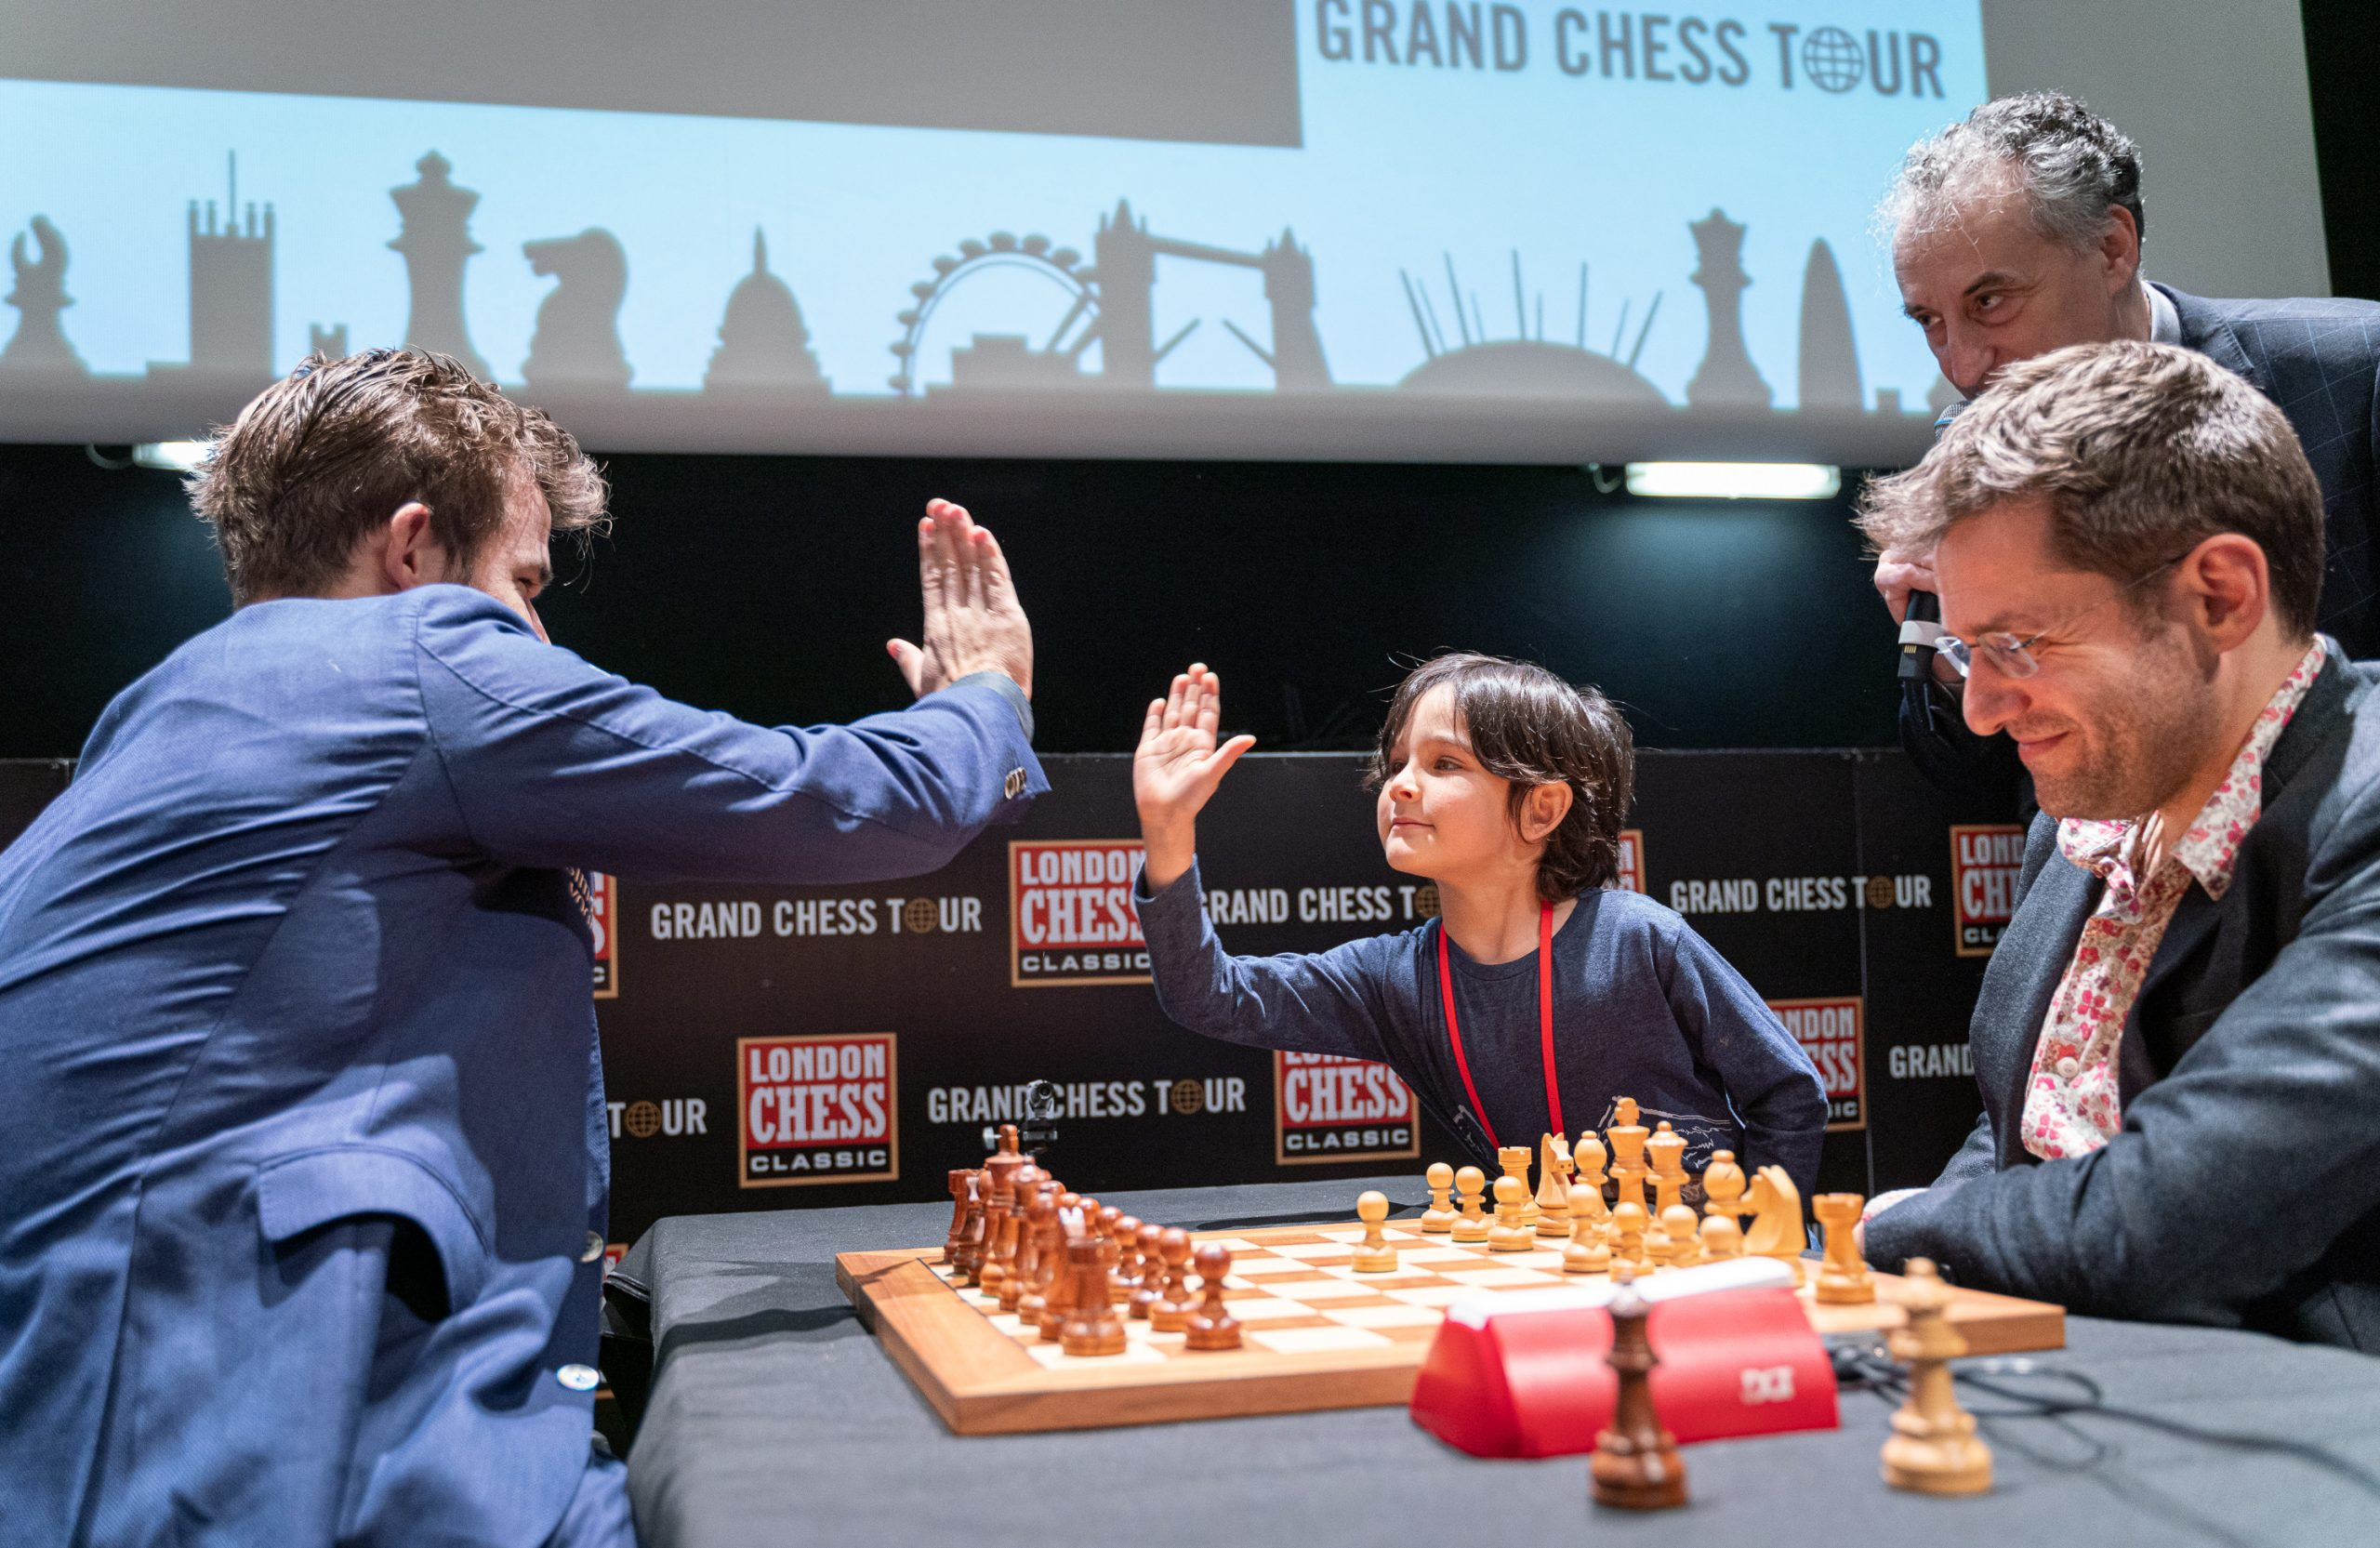 High five! Young stars meeting older ones | Image courtesy of Grand Chess Tour